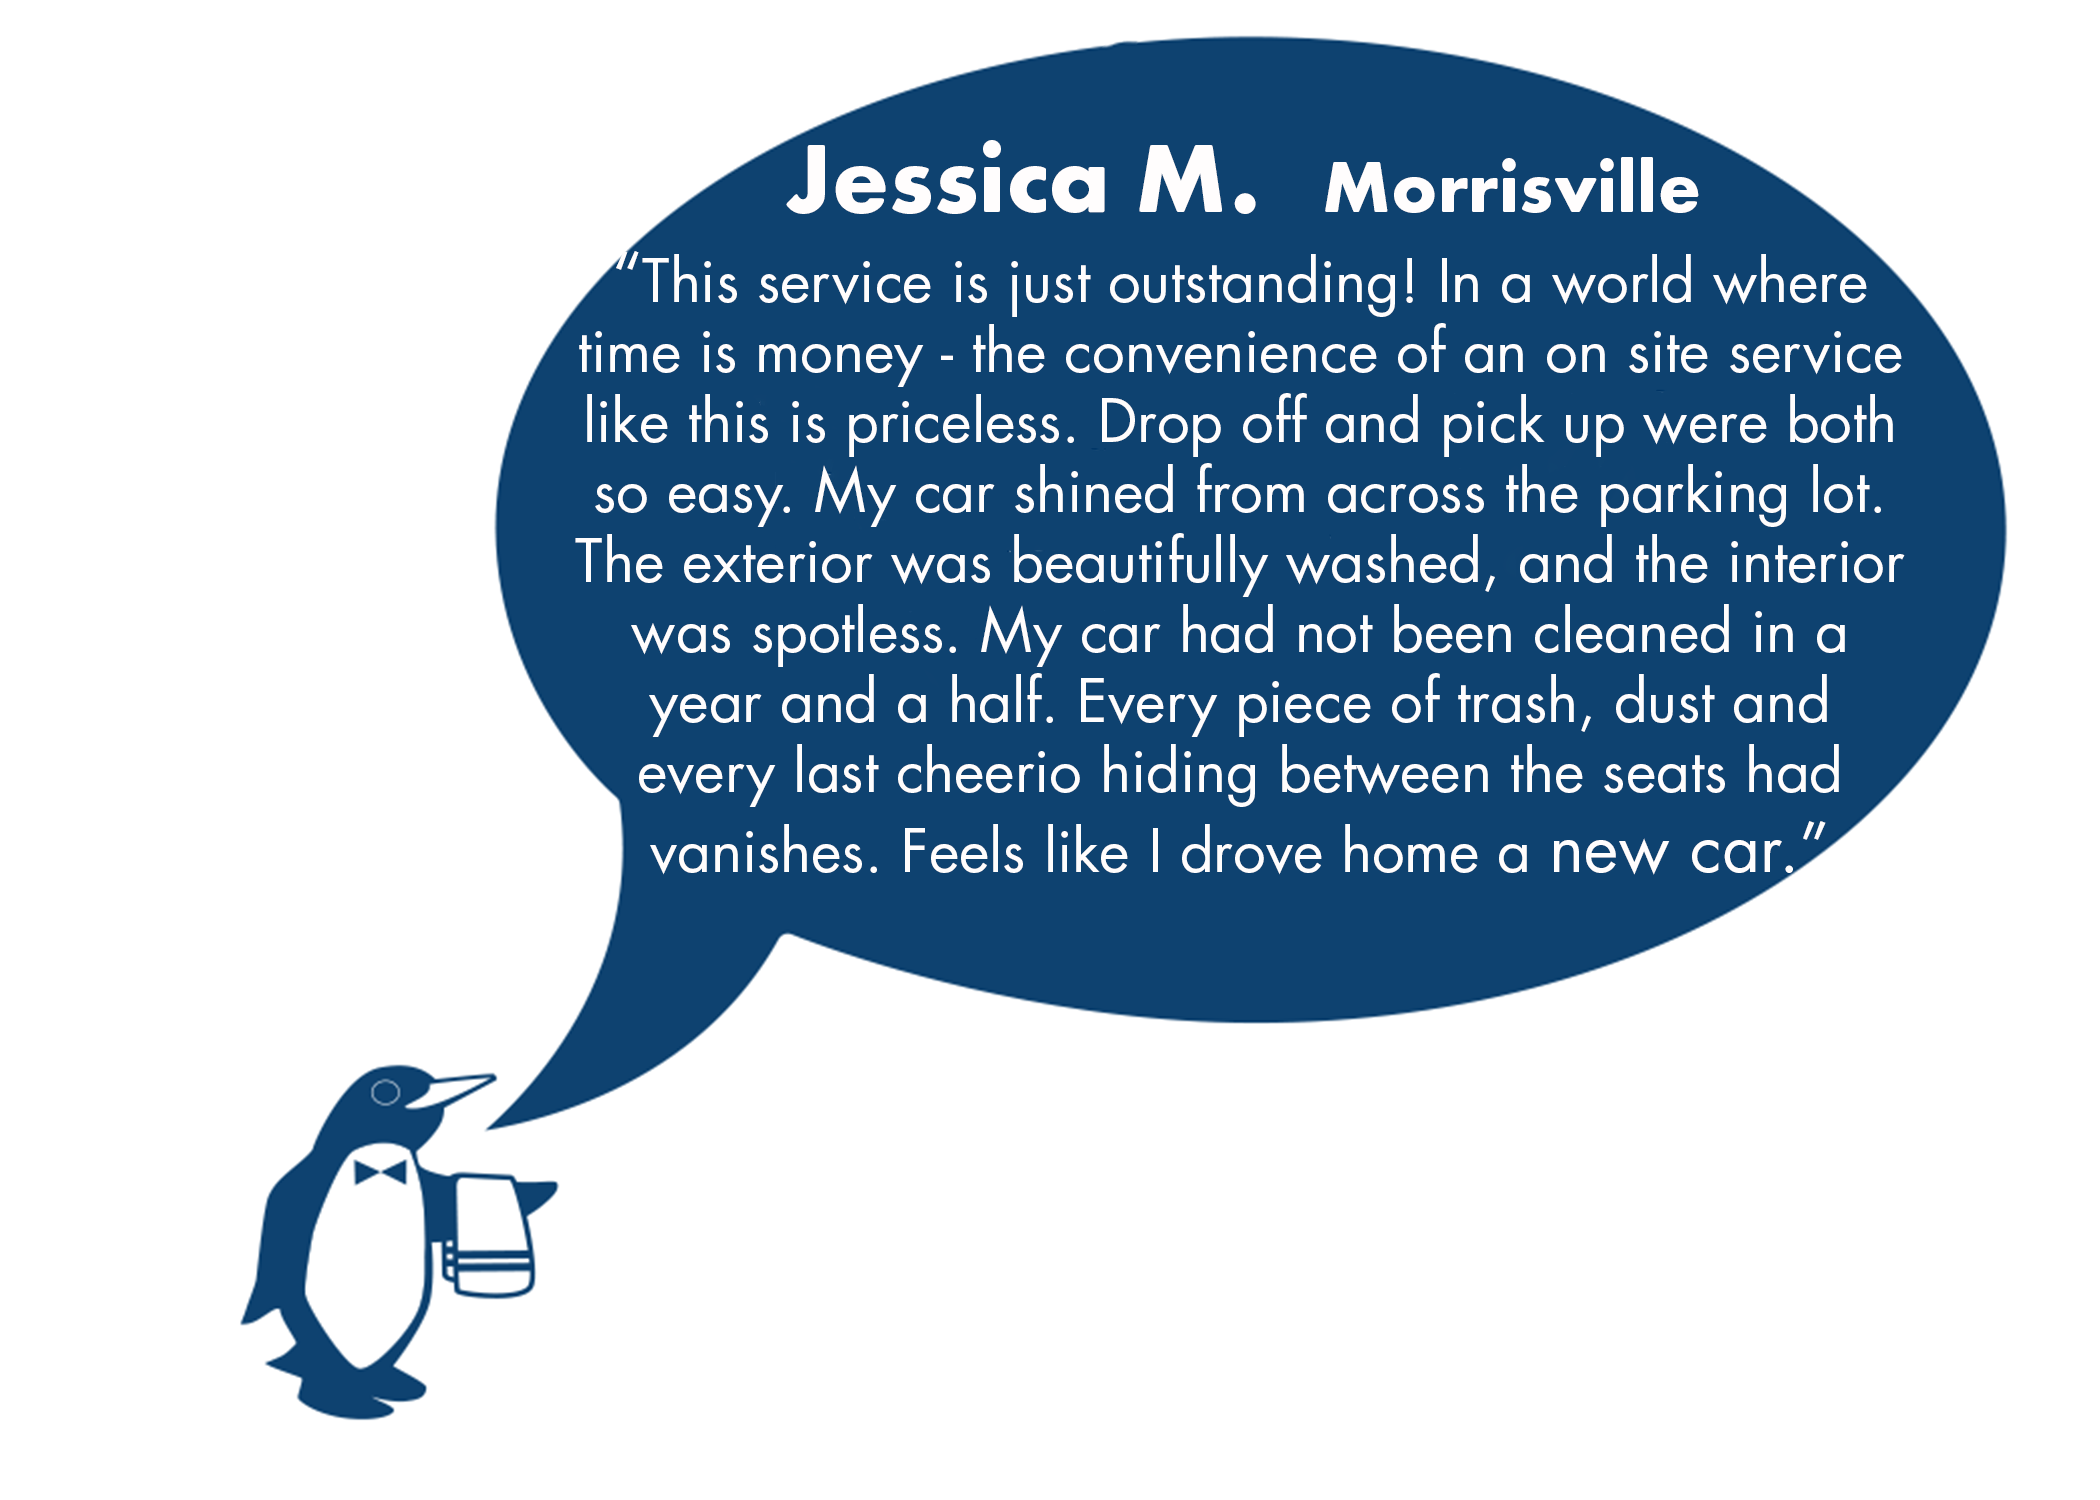 Jessica Review June Morrisville, NC